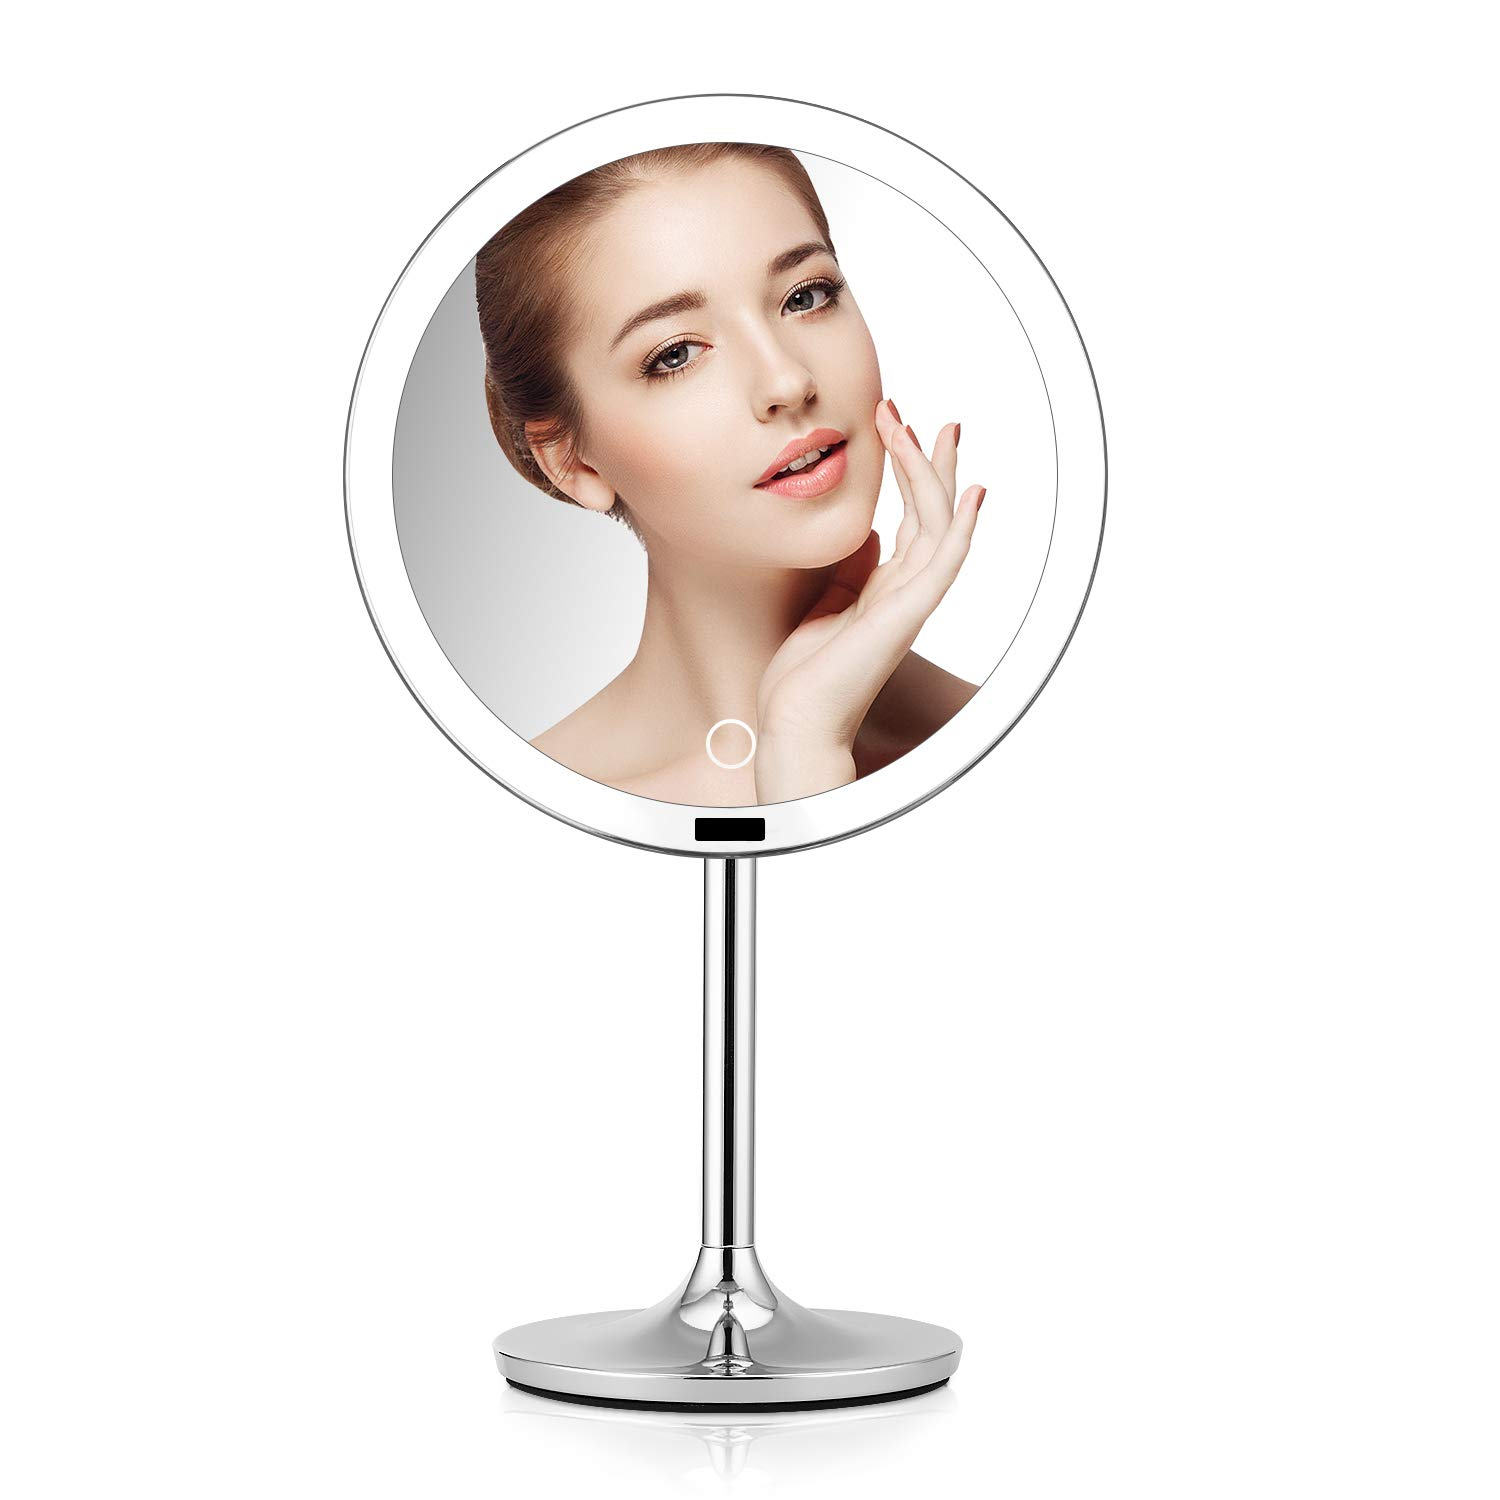 BRIGHTINWD 8.5'' Lighted Makeup Mirror with Sensor, Makeup Vanity Mirror with Lights, Brightness Control, Rechargeable and Cordless, Polished Chrome Finish(No Magnification) by BRIGHTINWD